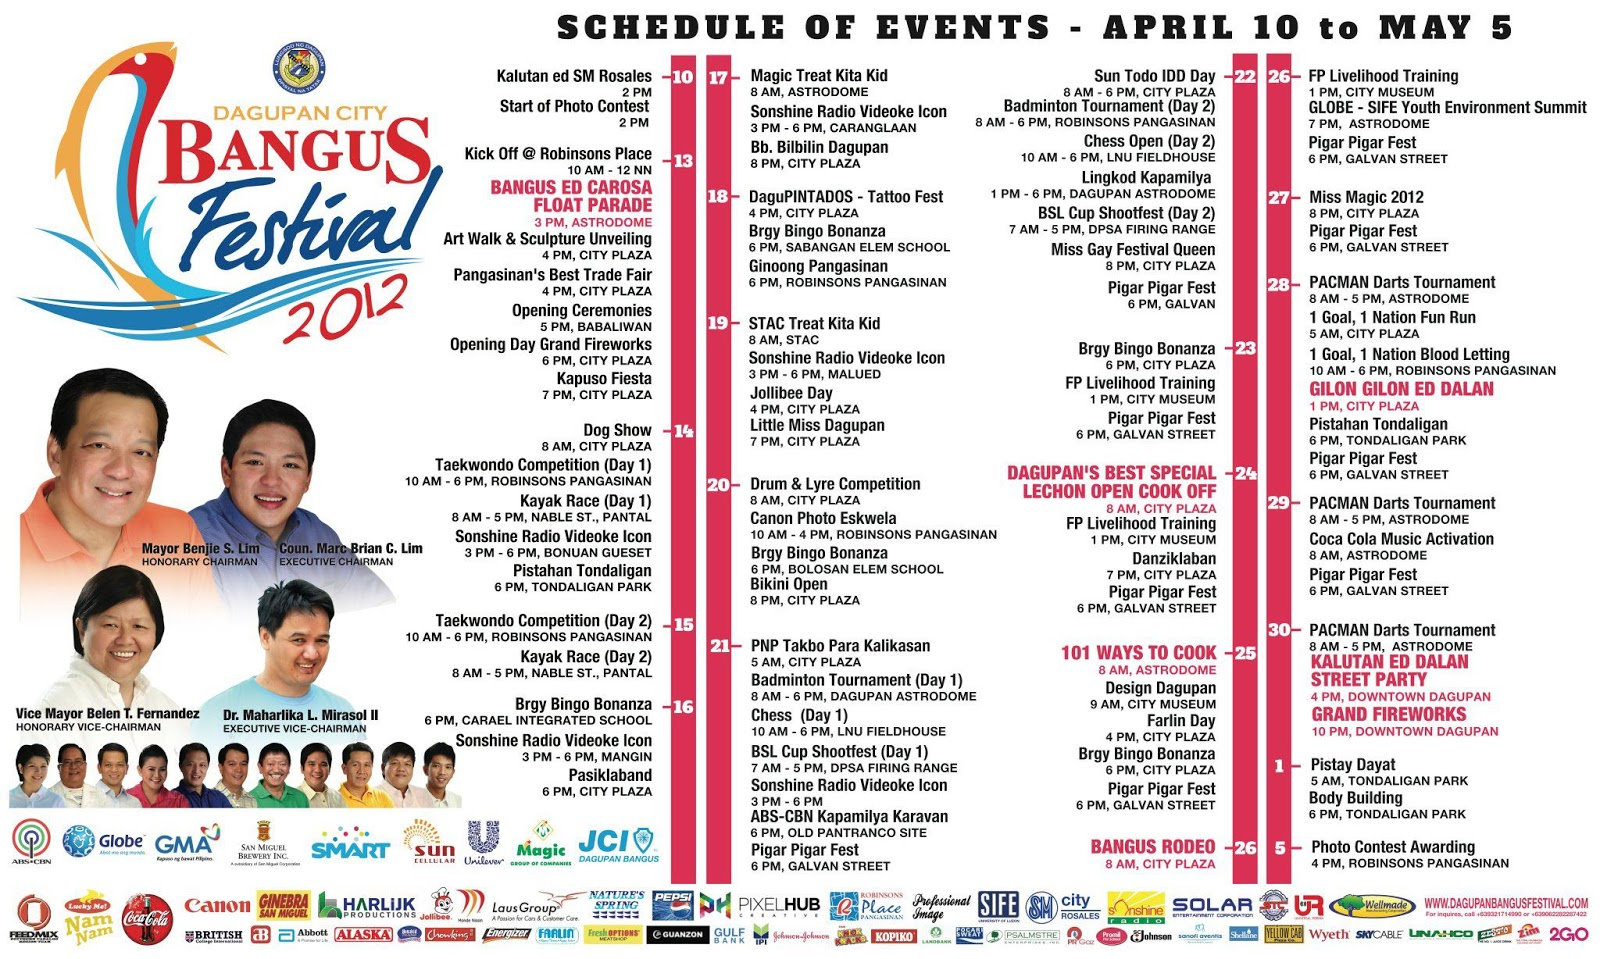 Official 2012 Dagupan City Bangus Festival Schedule of Events